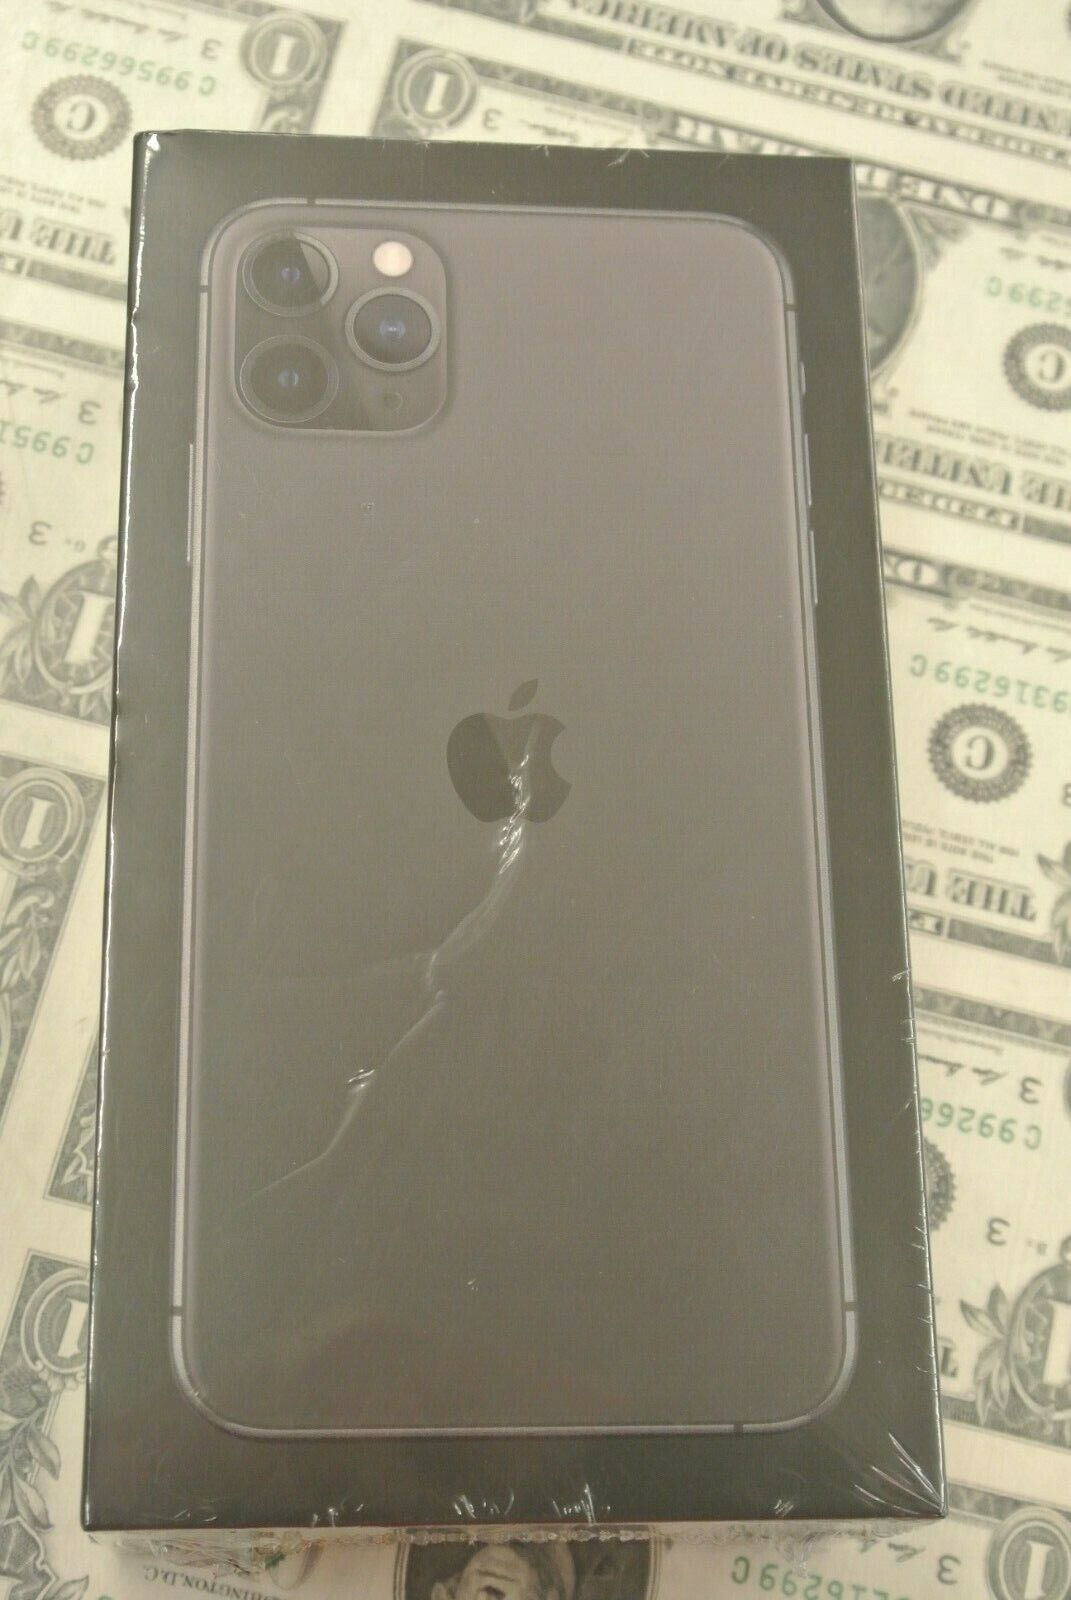 Apple IPhone 11 Pro Max Space Gray 64GB T-Mobile, MWFN2LL/A, A2161 - New - $680.00